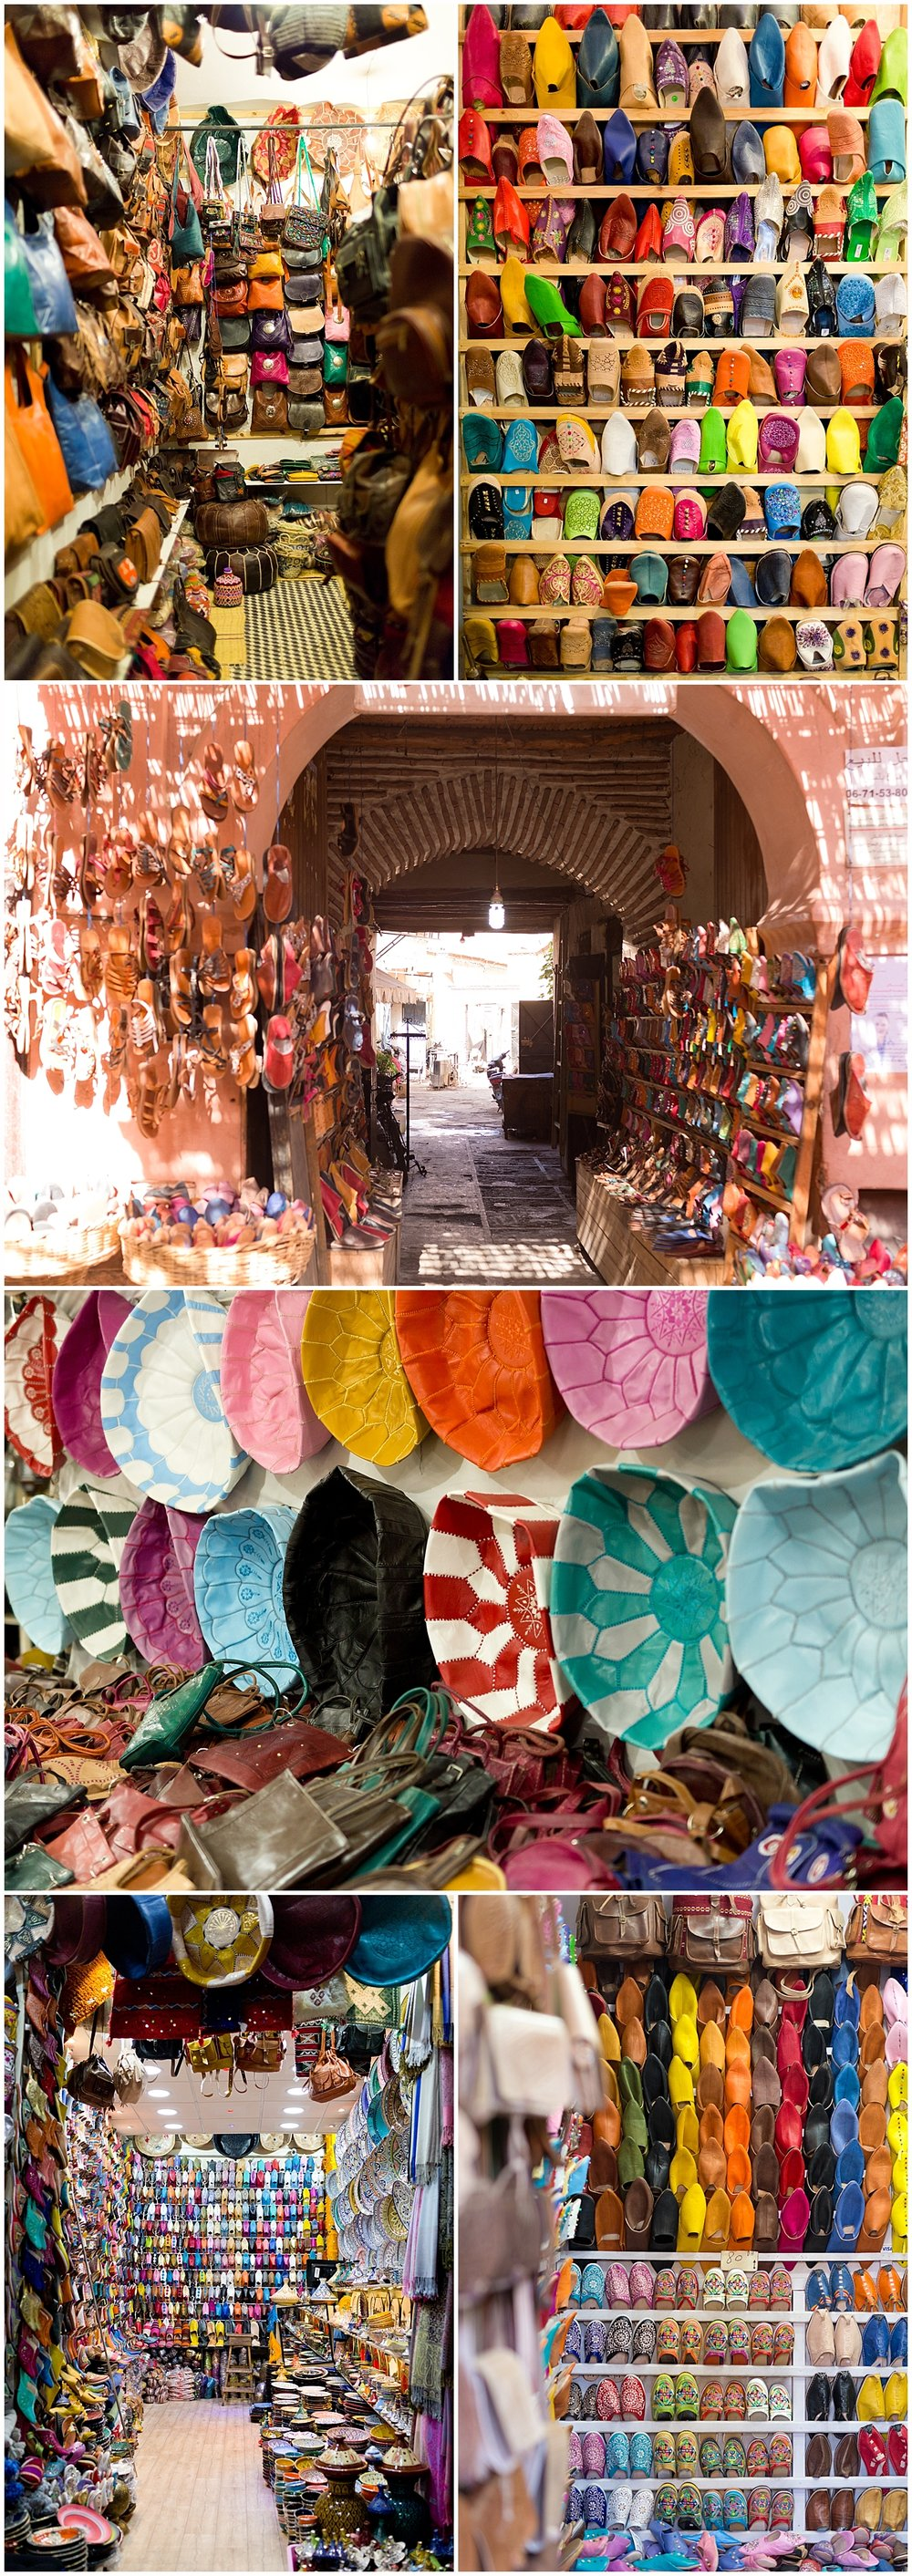 colorful leather goods for sale in Marrakech, Morocco - poufs, moccasins, bags